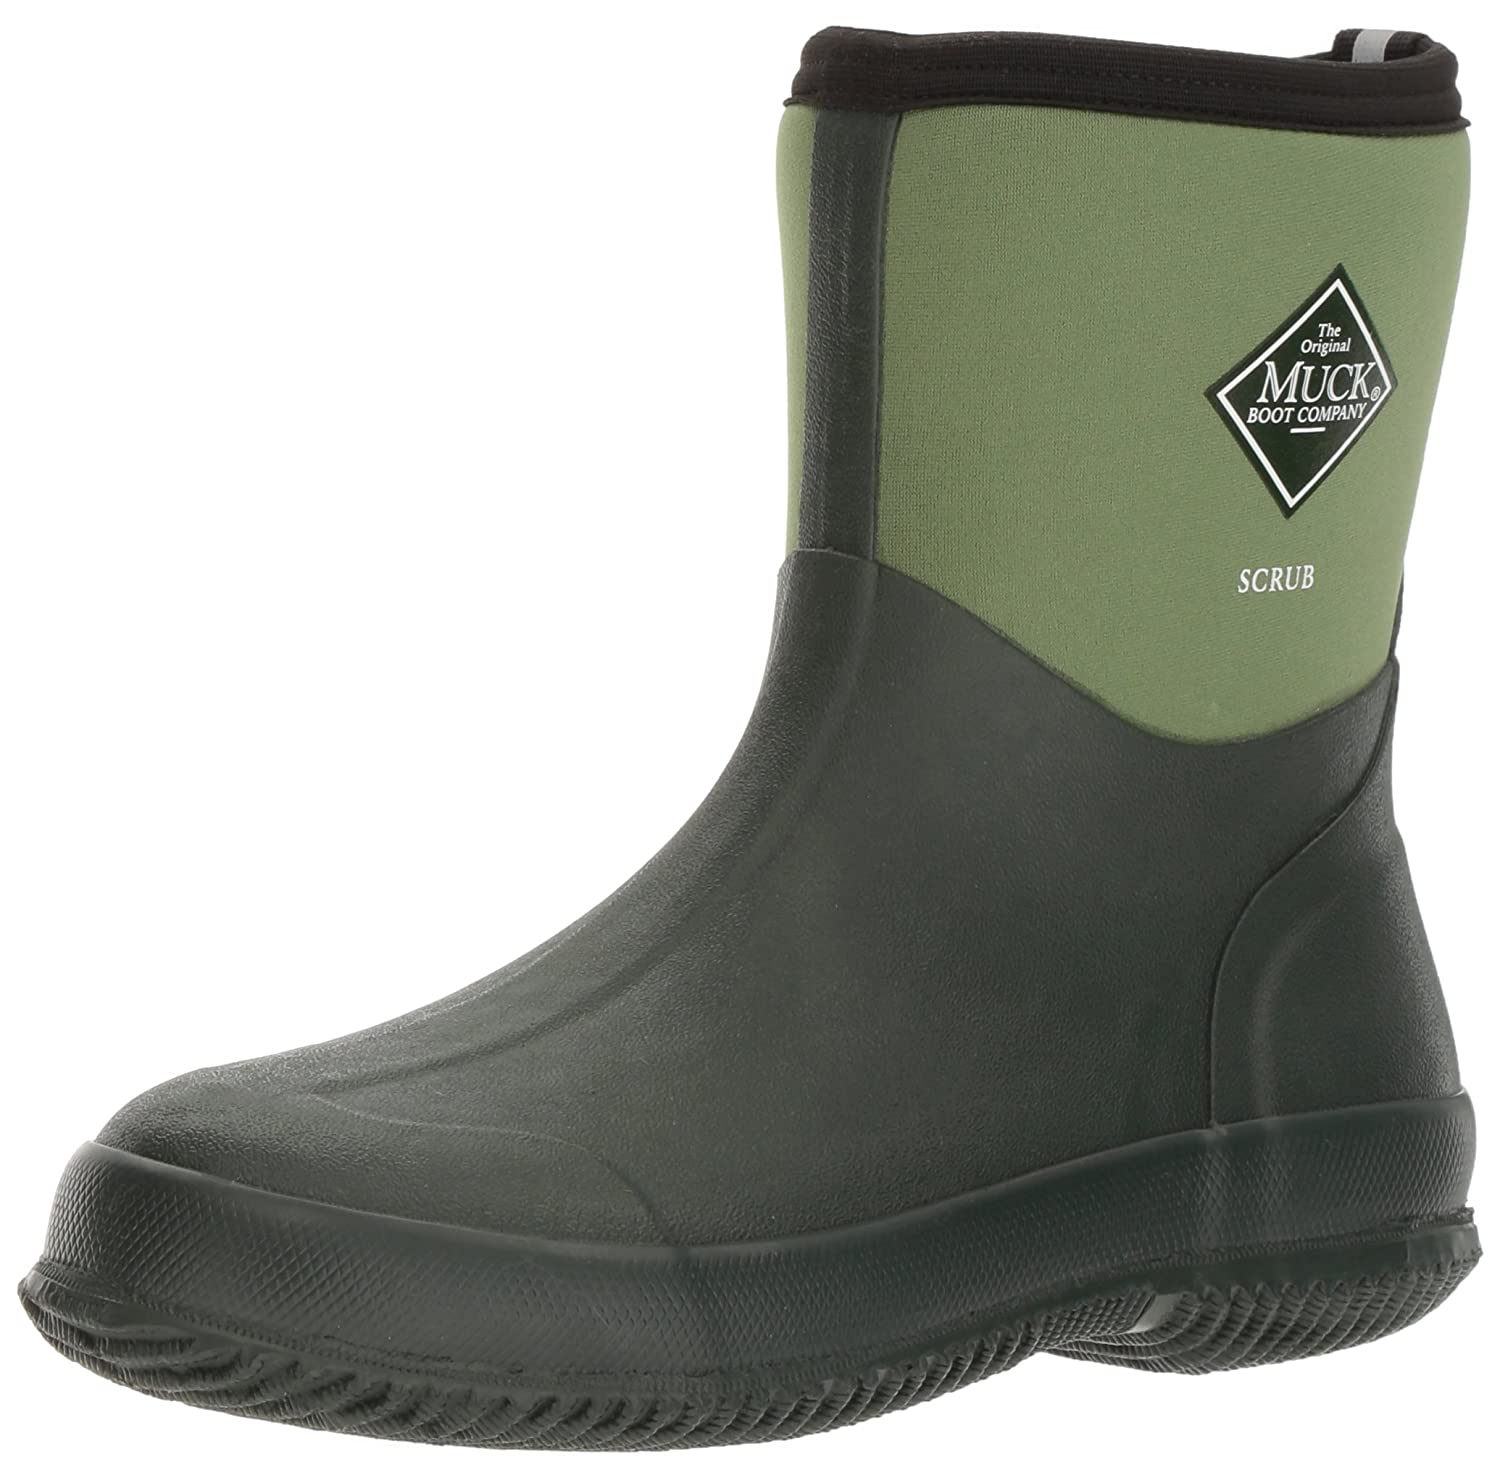 The Original MuckBoots Scrub Boot B000WGD5HW Men's 10 M/Women's 11 M|Garden Green